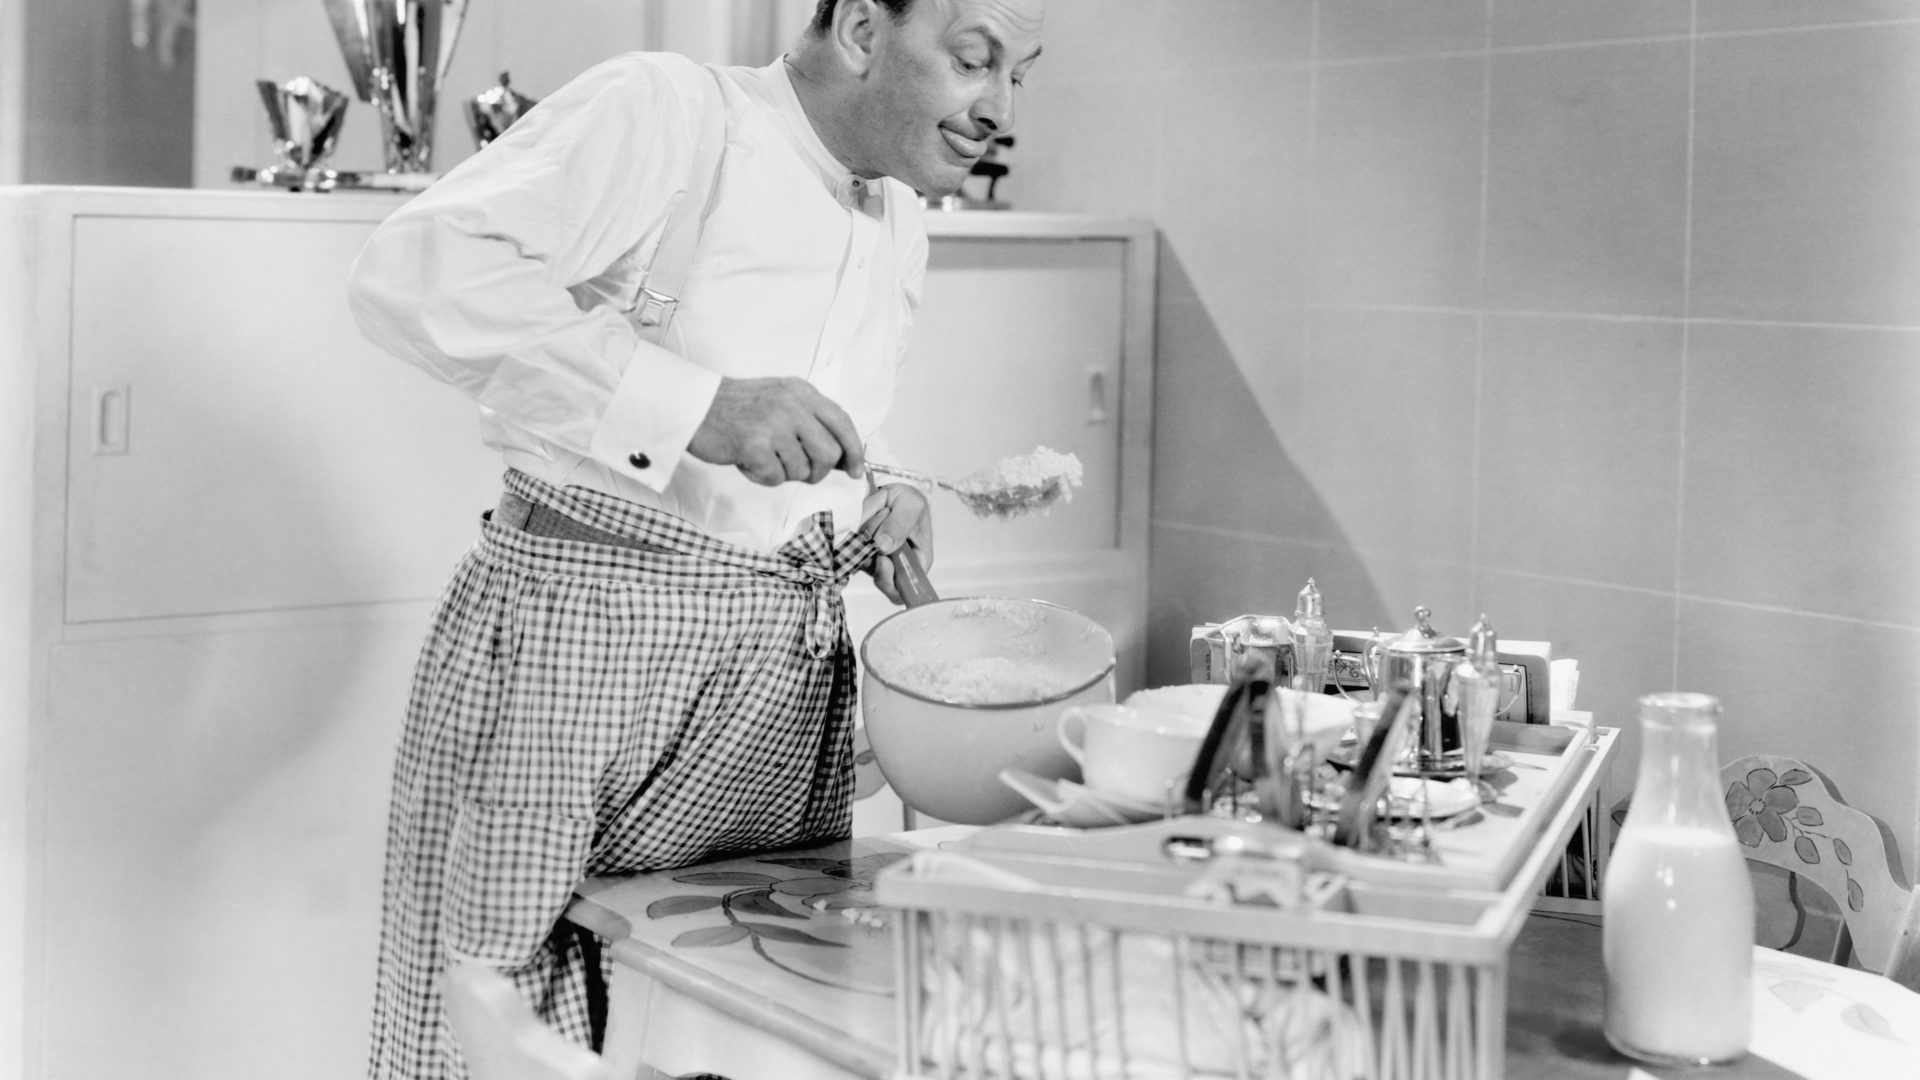 Man preparing food in a kitchen